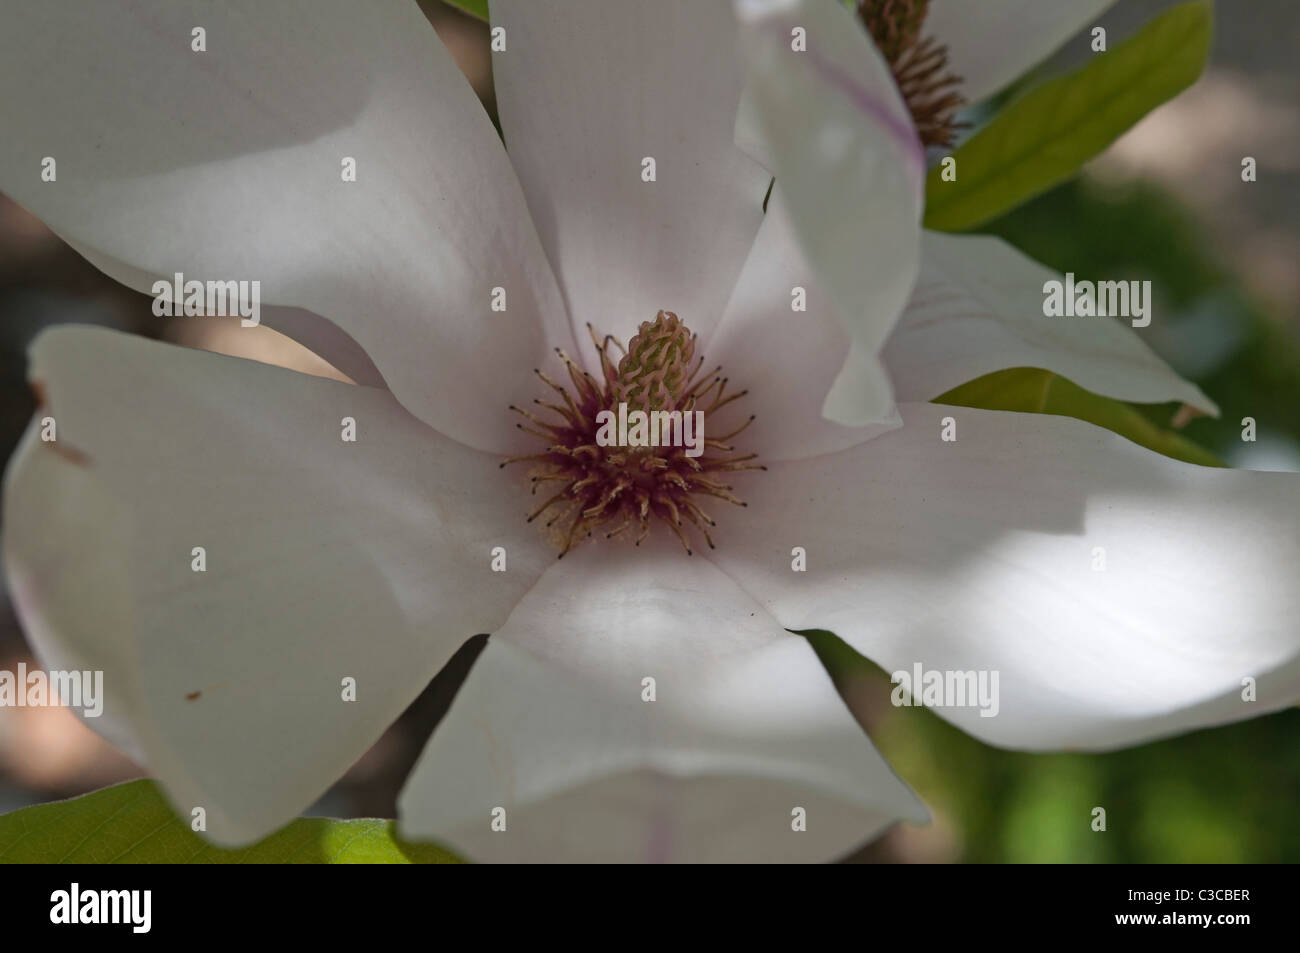 Close up of a Magnolia flower in the subfamily Magnolioideae of the family Magnoliaceae England, UK Stock Photo